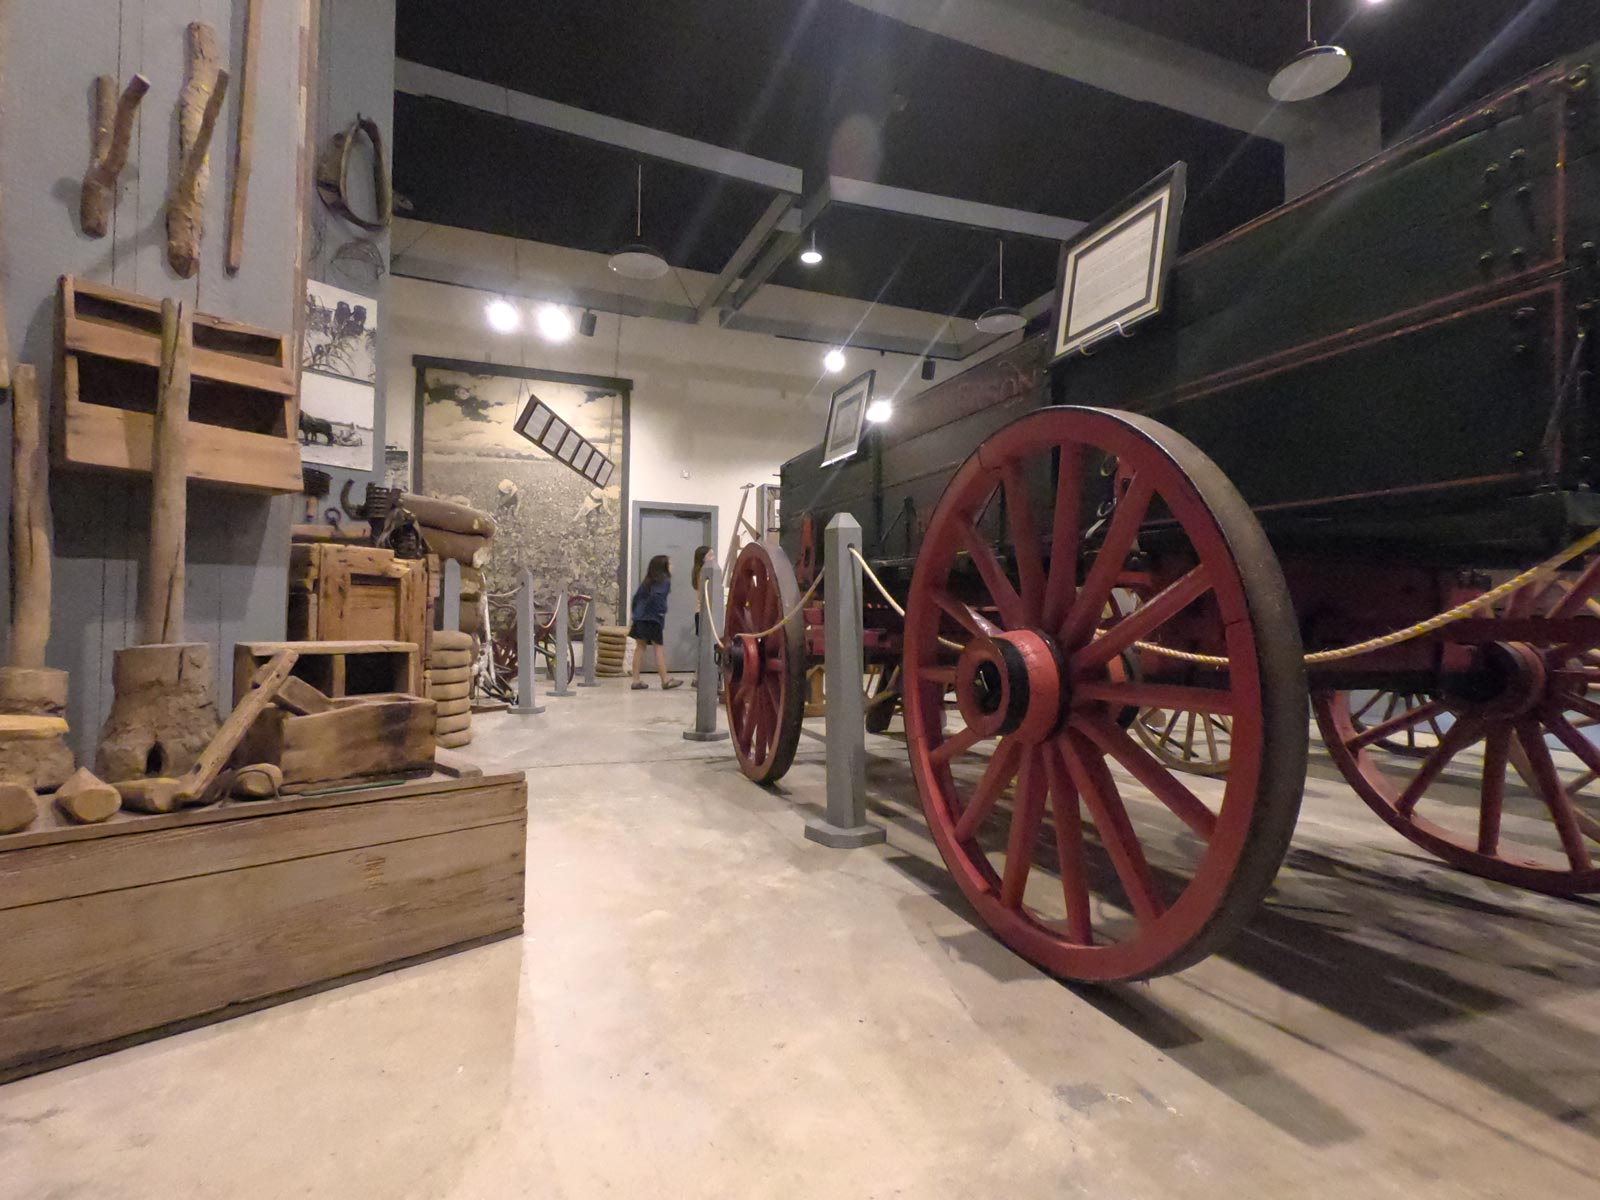 Indoor exhibit of tools and wagons for tobacco farming at  the Tobacco Farm Life Museum, Kenly, North Carolina